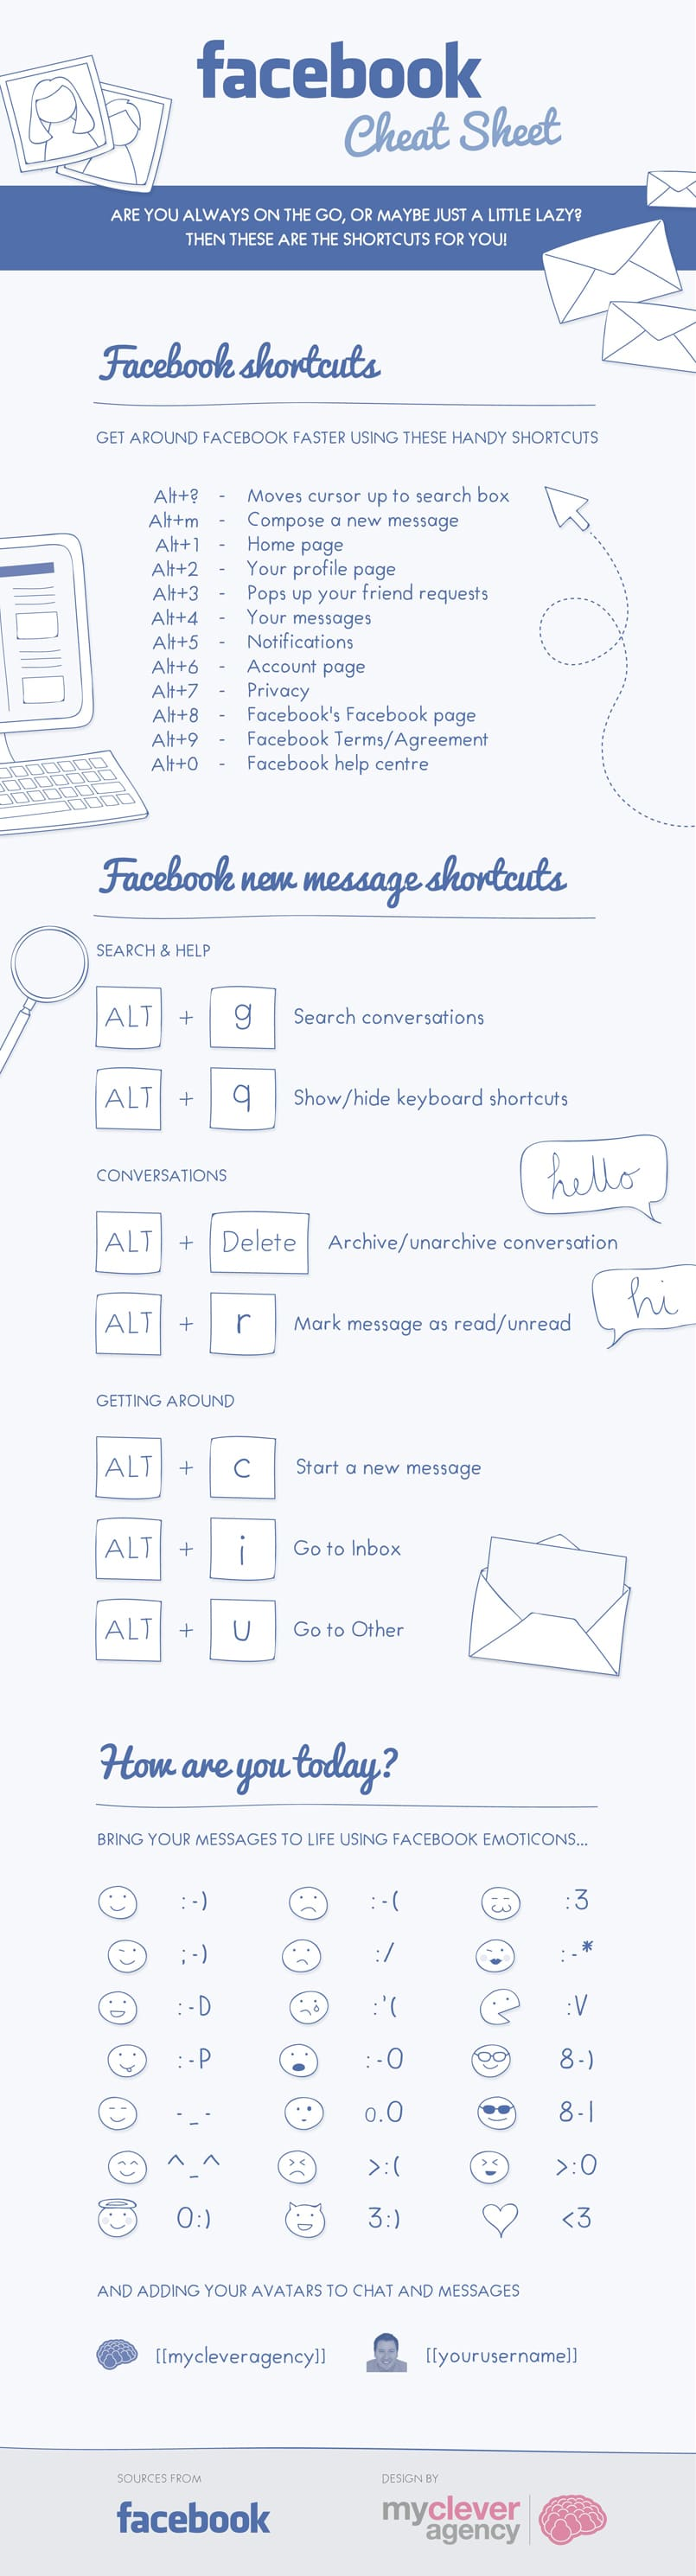 Network Faster With Facebook Shortcuts [Cheat Sheet]